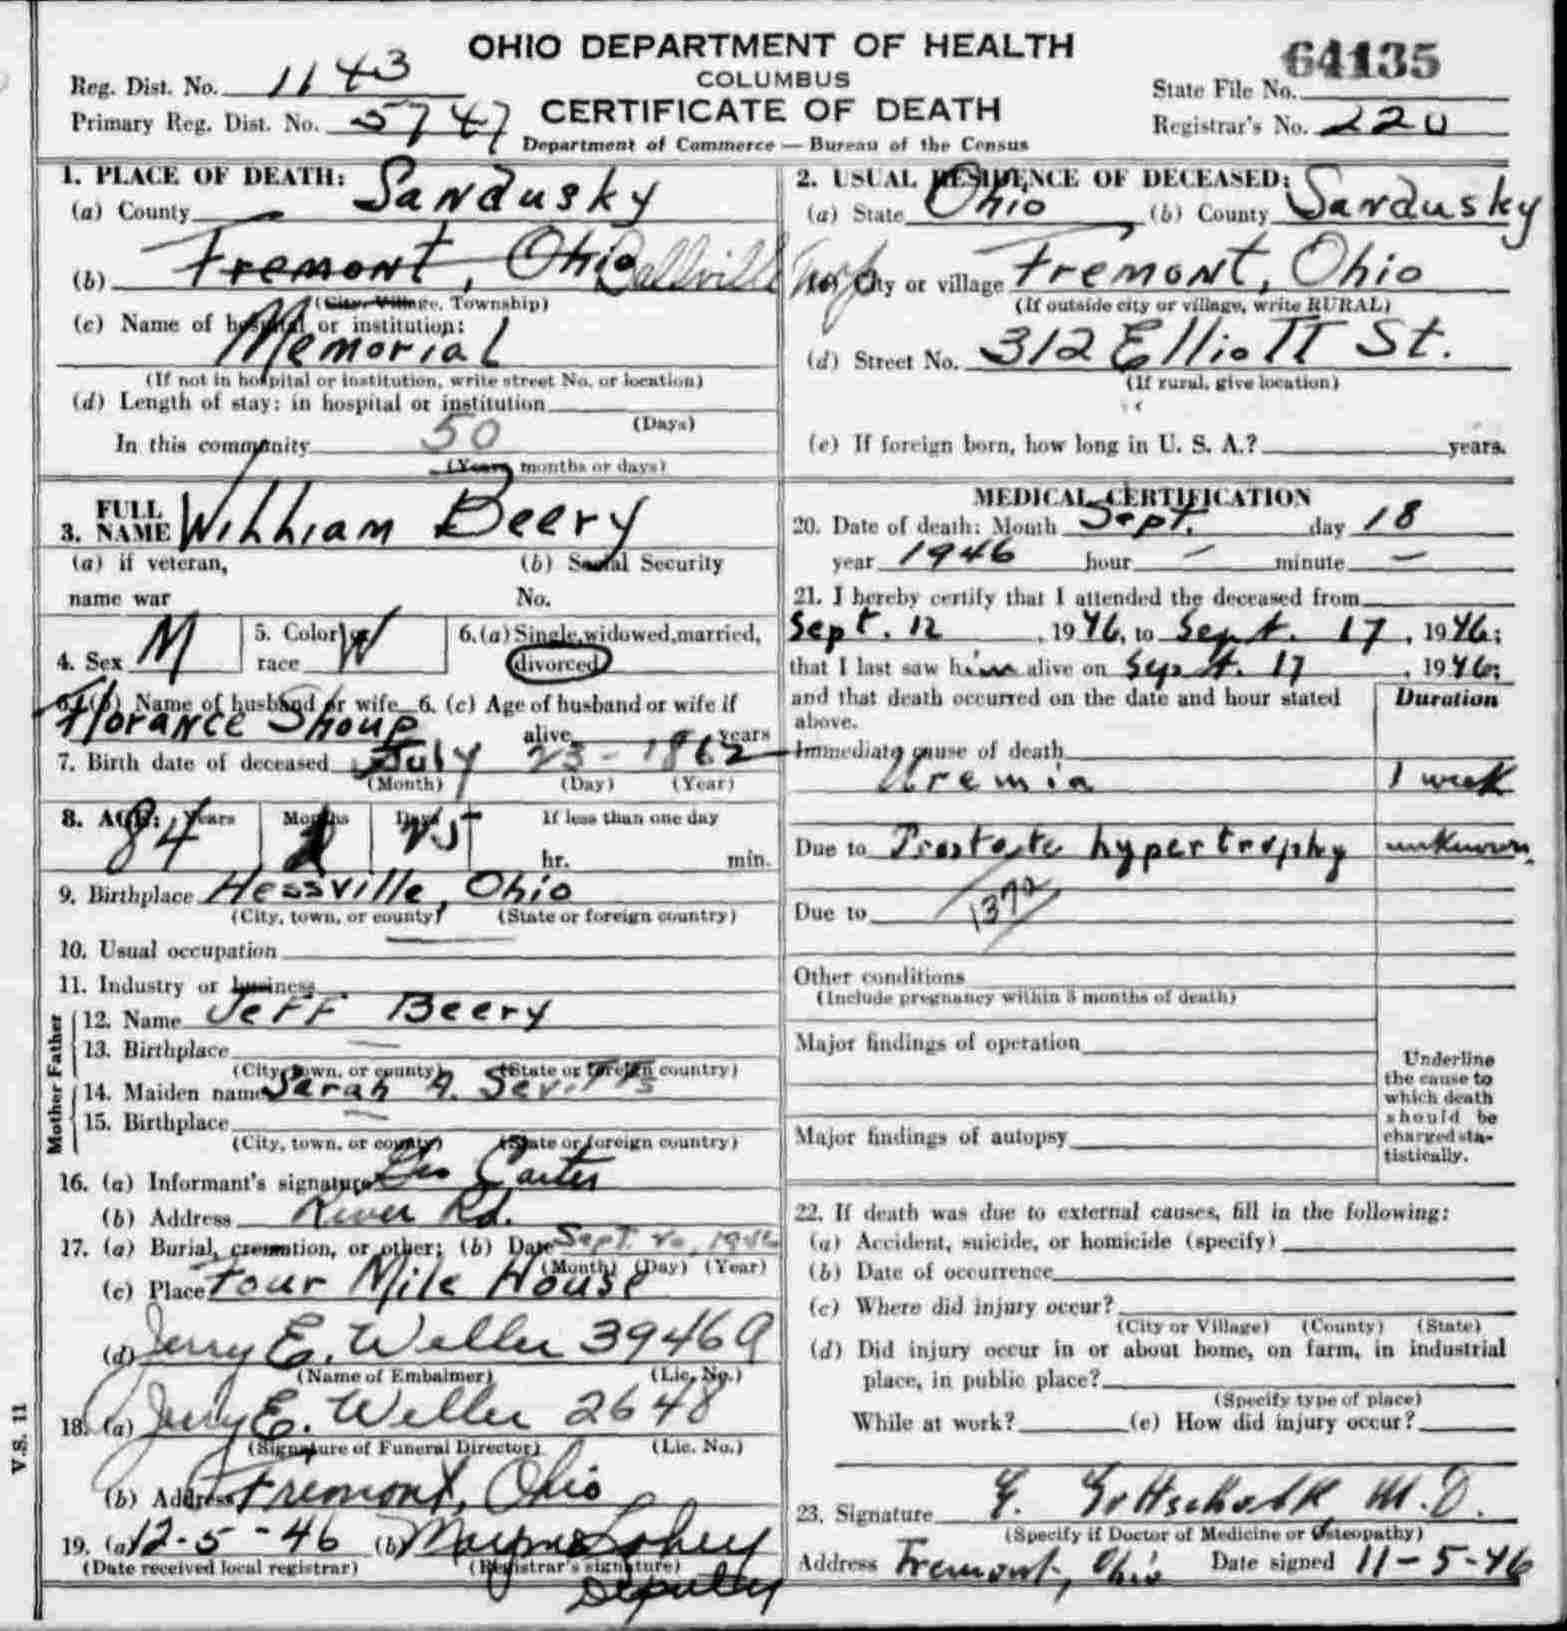 William Beery's death certificate